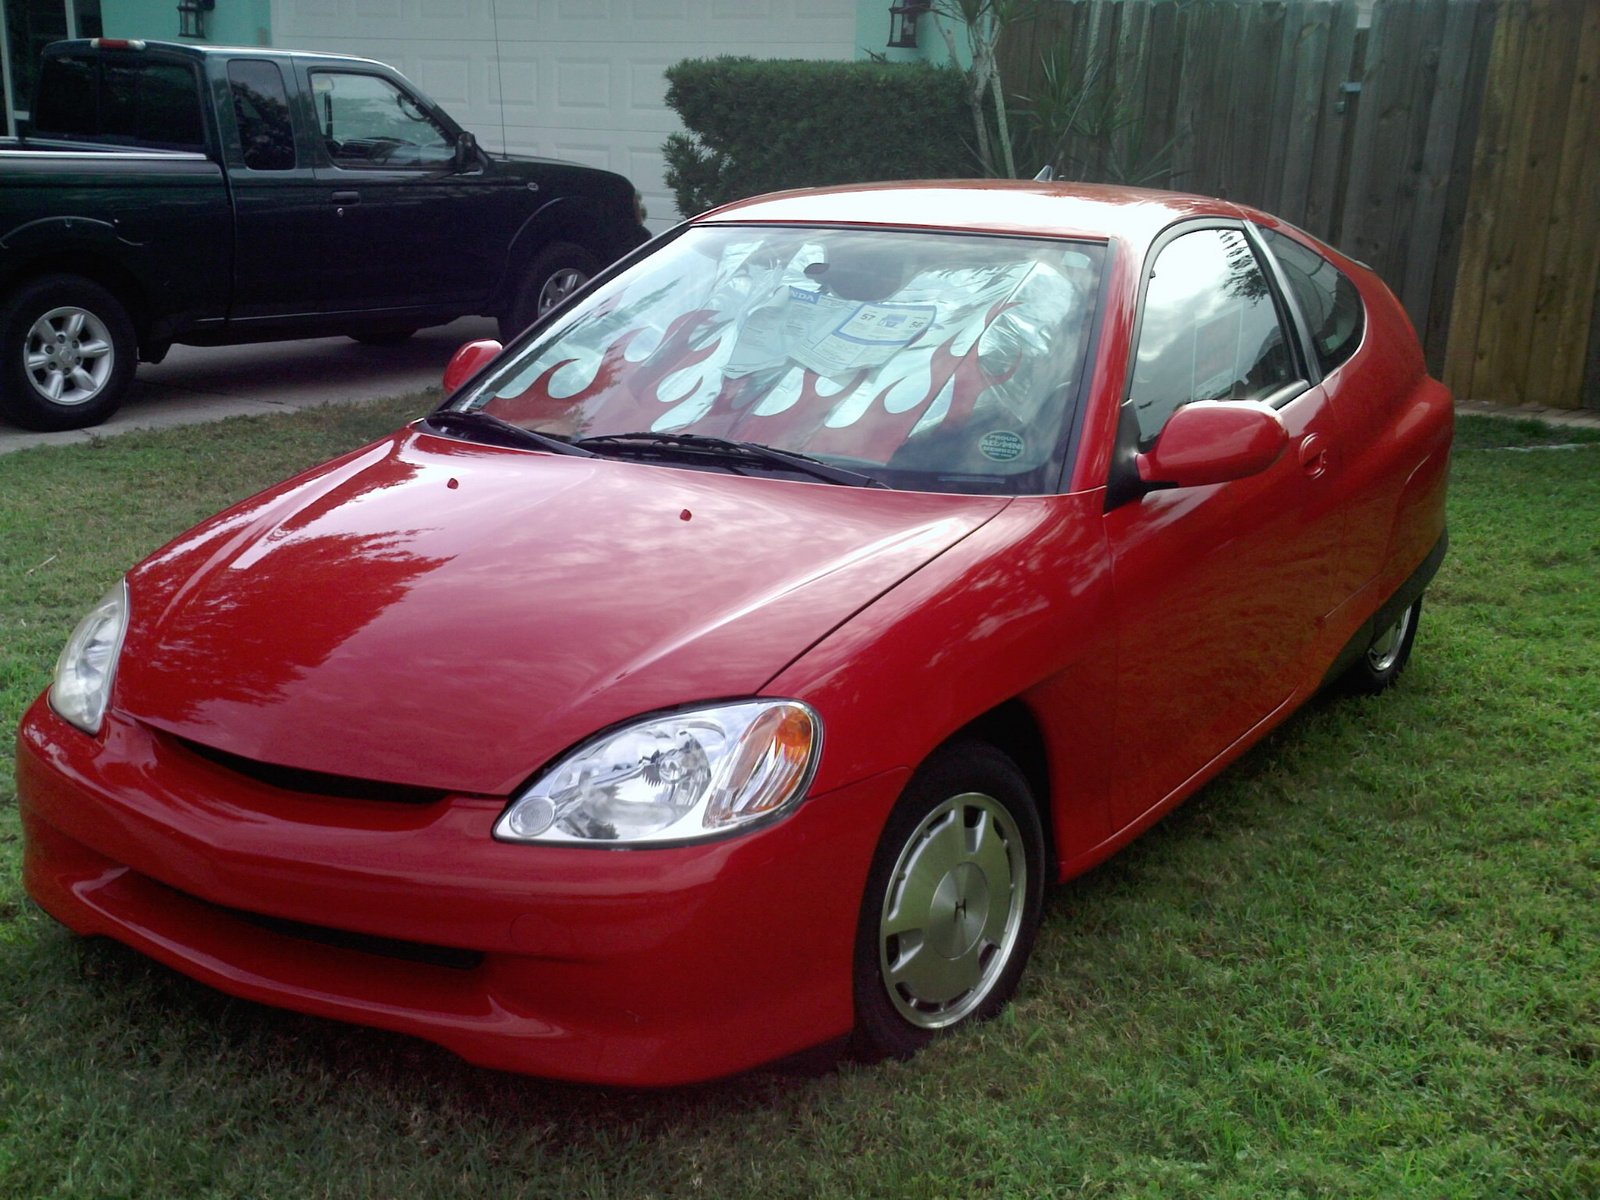 Picture of 2006 Honda Insight Hatchback